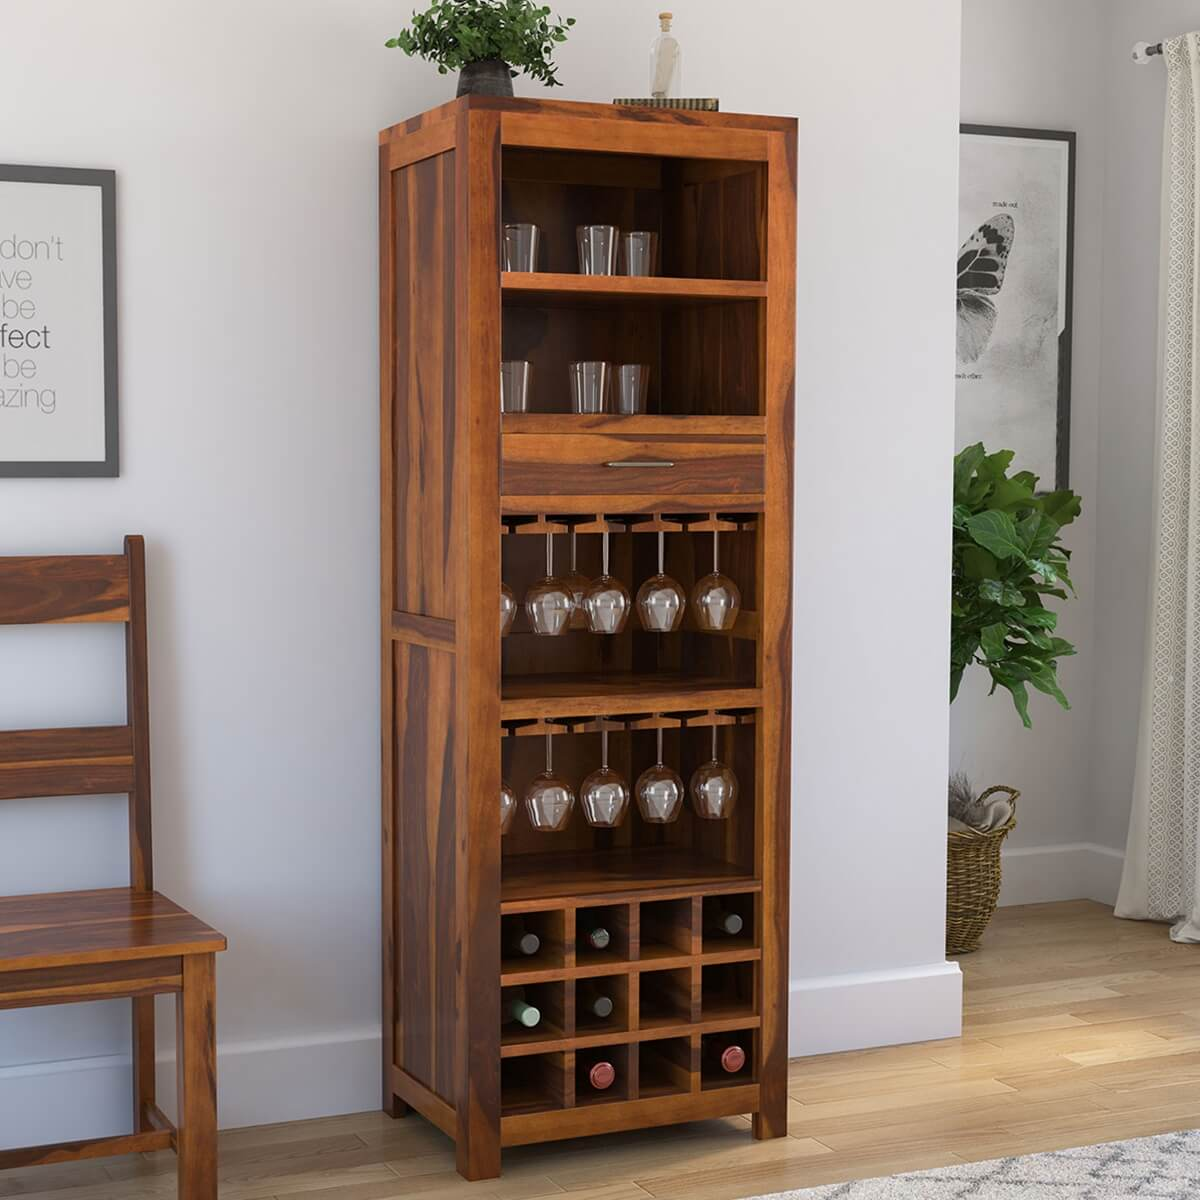 liquor joyous rustic wells ikea plus woodgrain you decor image idea furniture enamour home tall bar ideas cabinet breathtaking liquorcabinet wine as design rc